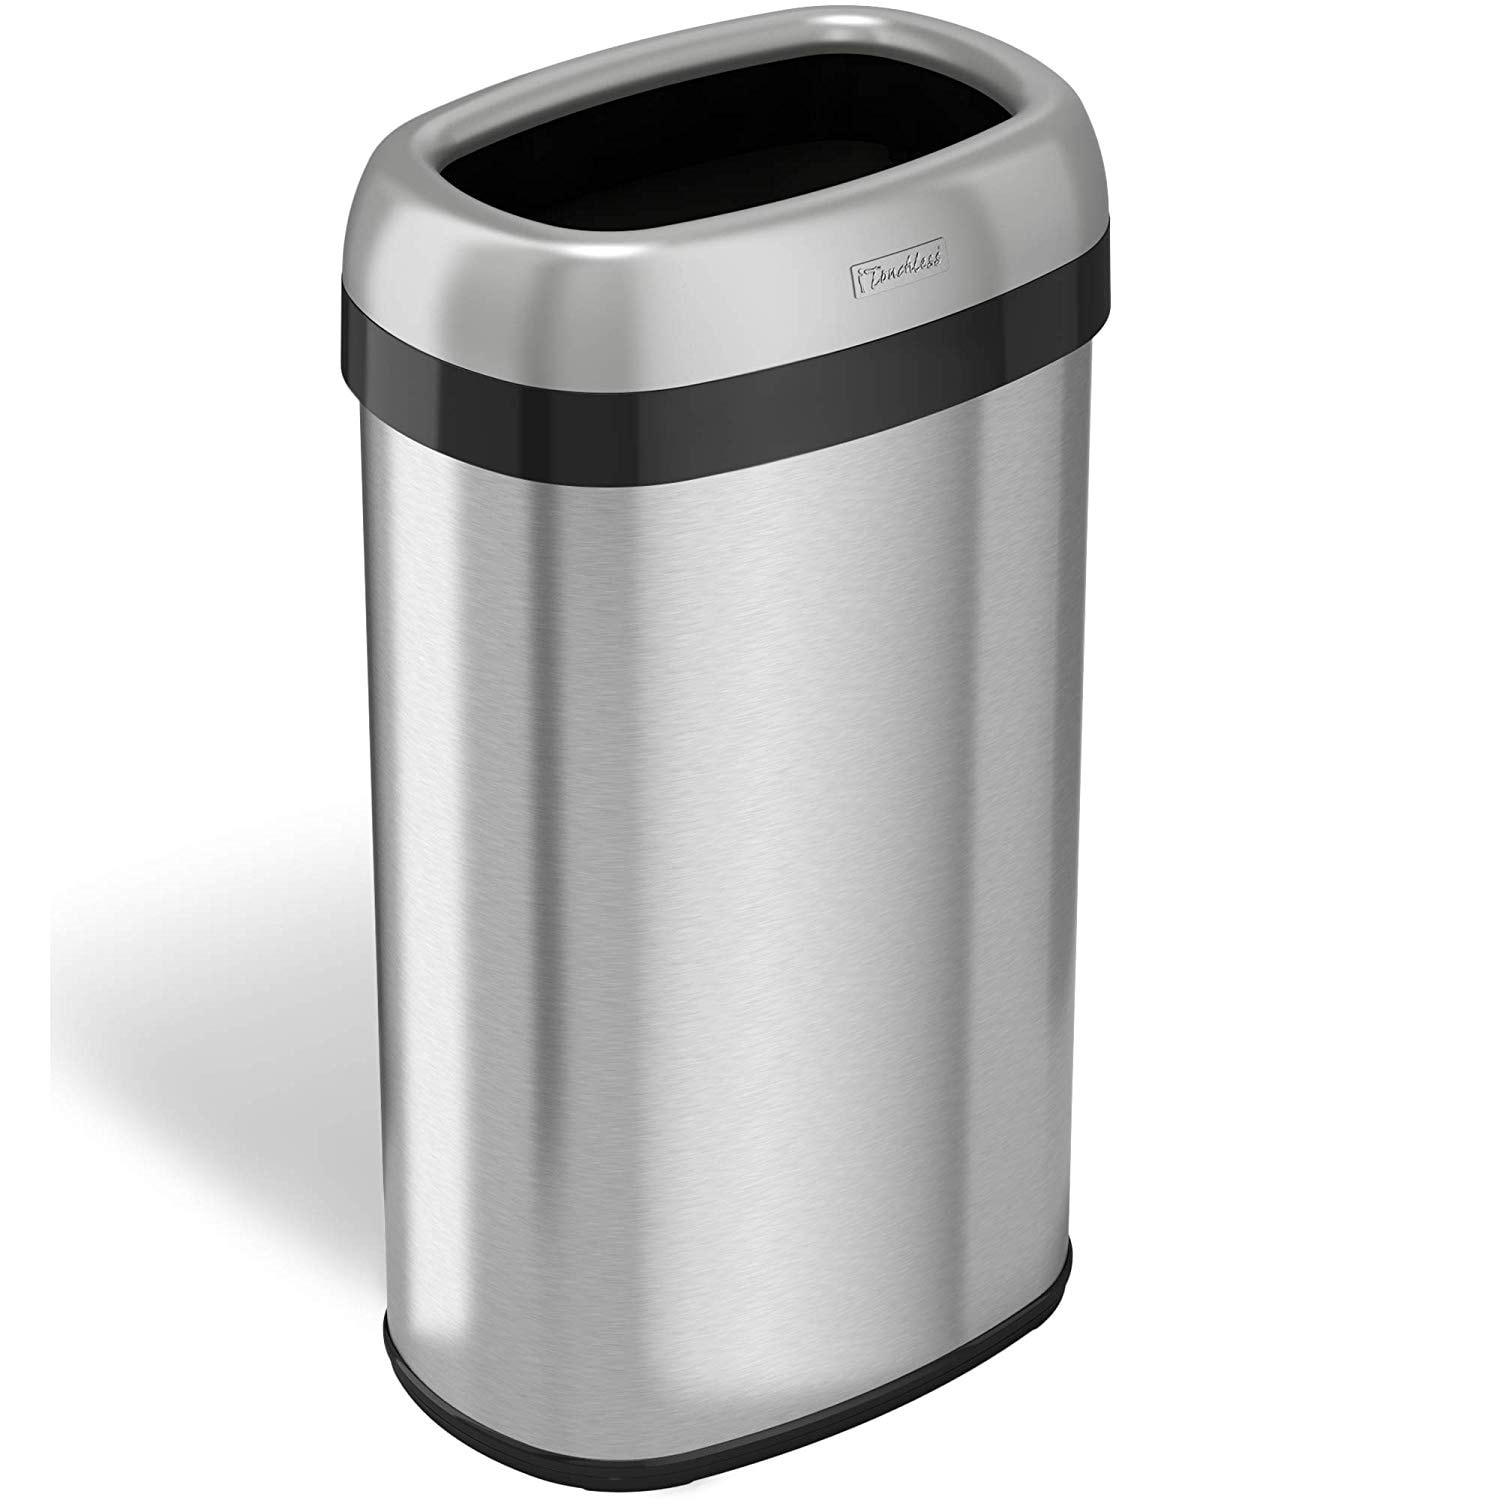 Dual Deodorizer Oval Open Top Trash Can